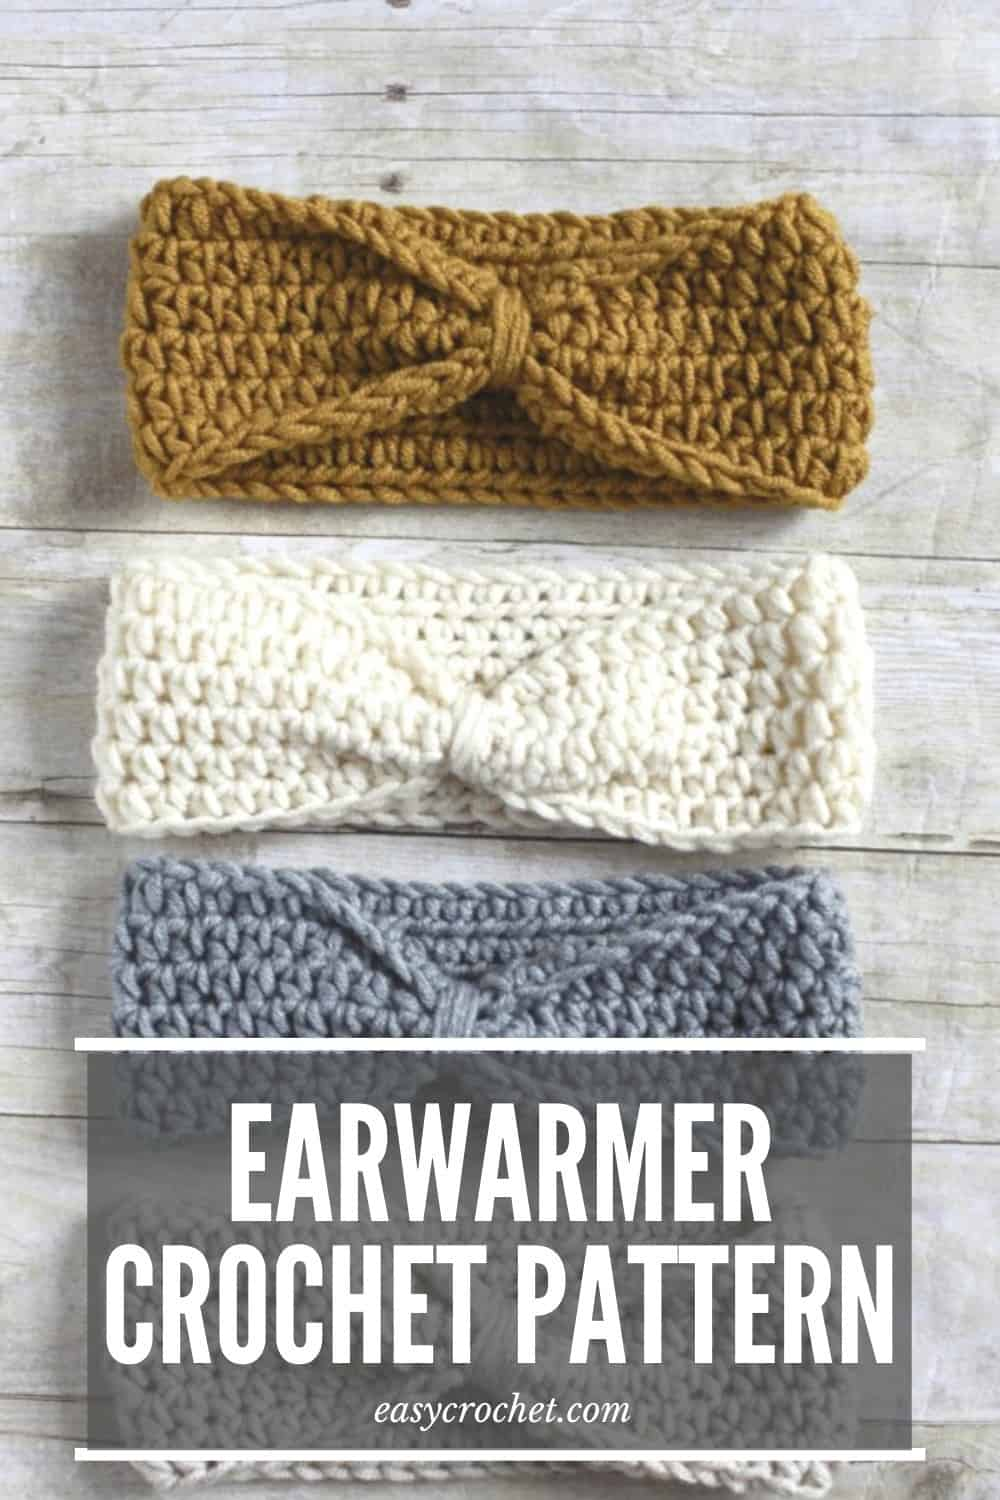 Knotted Ear Warmer Crochet Pattern via @easycrochetcom